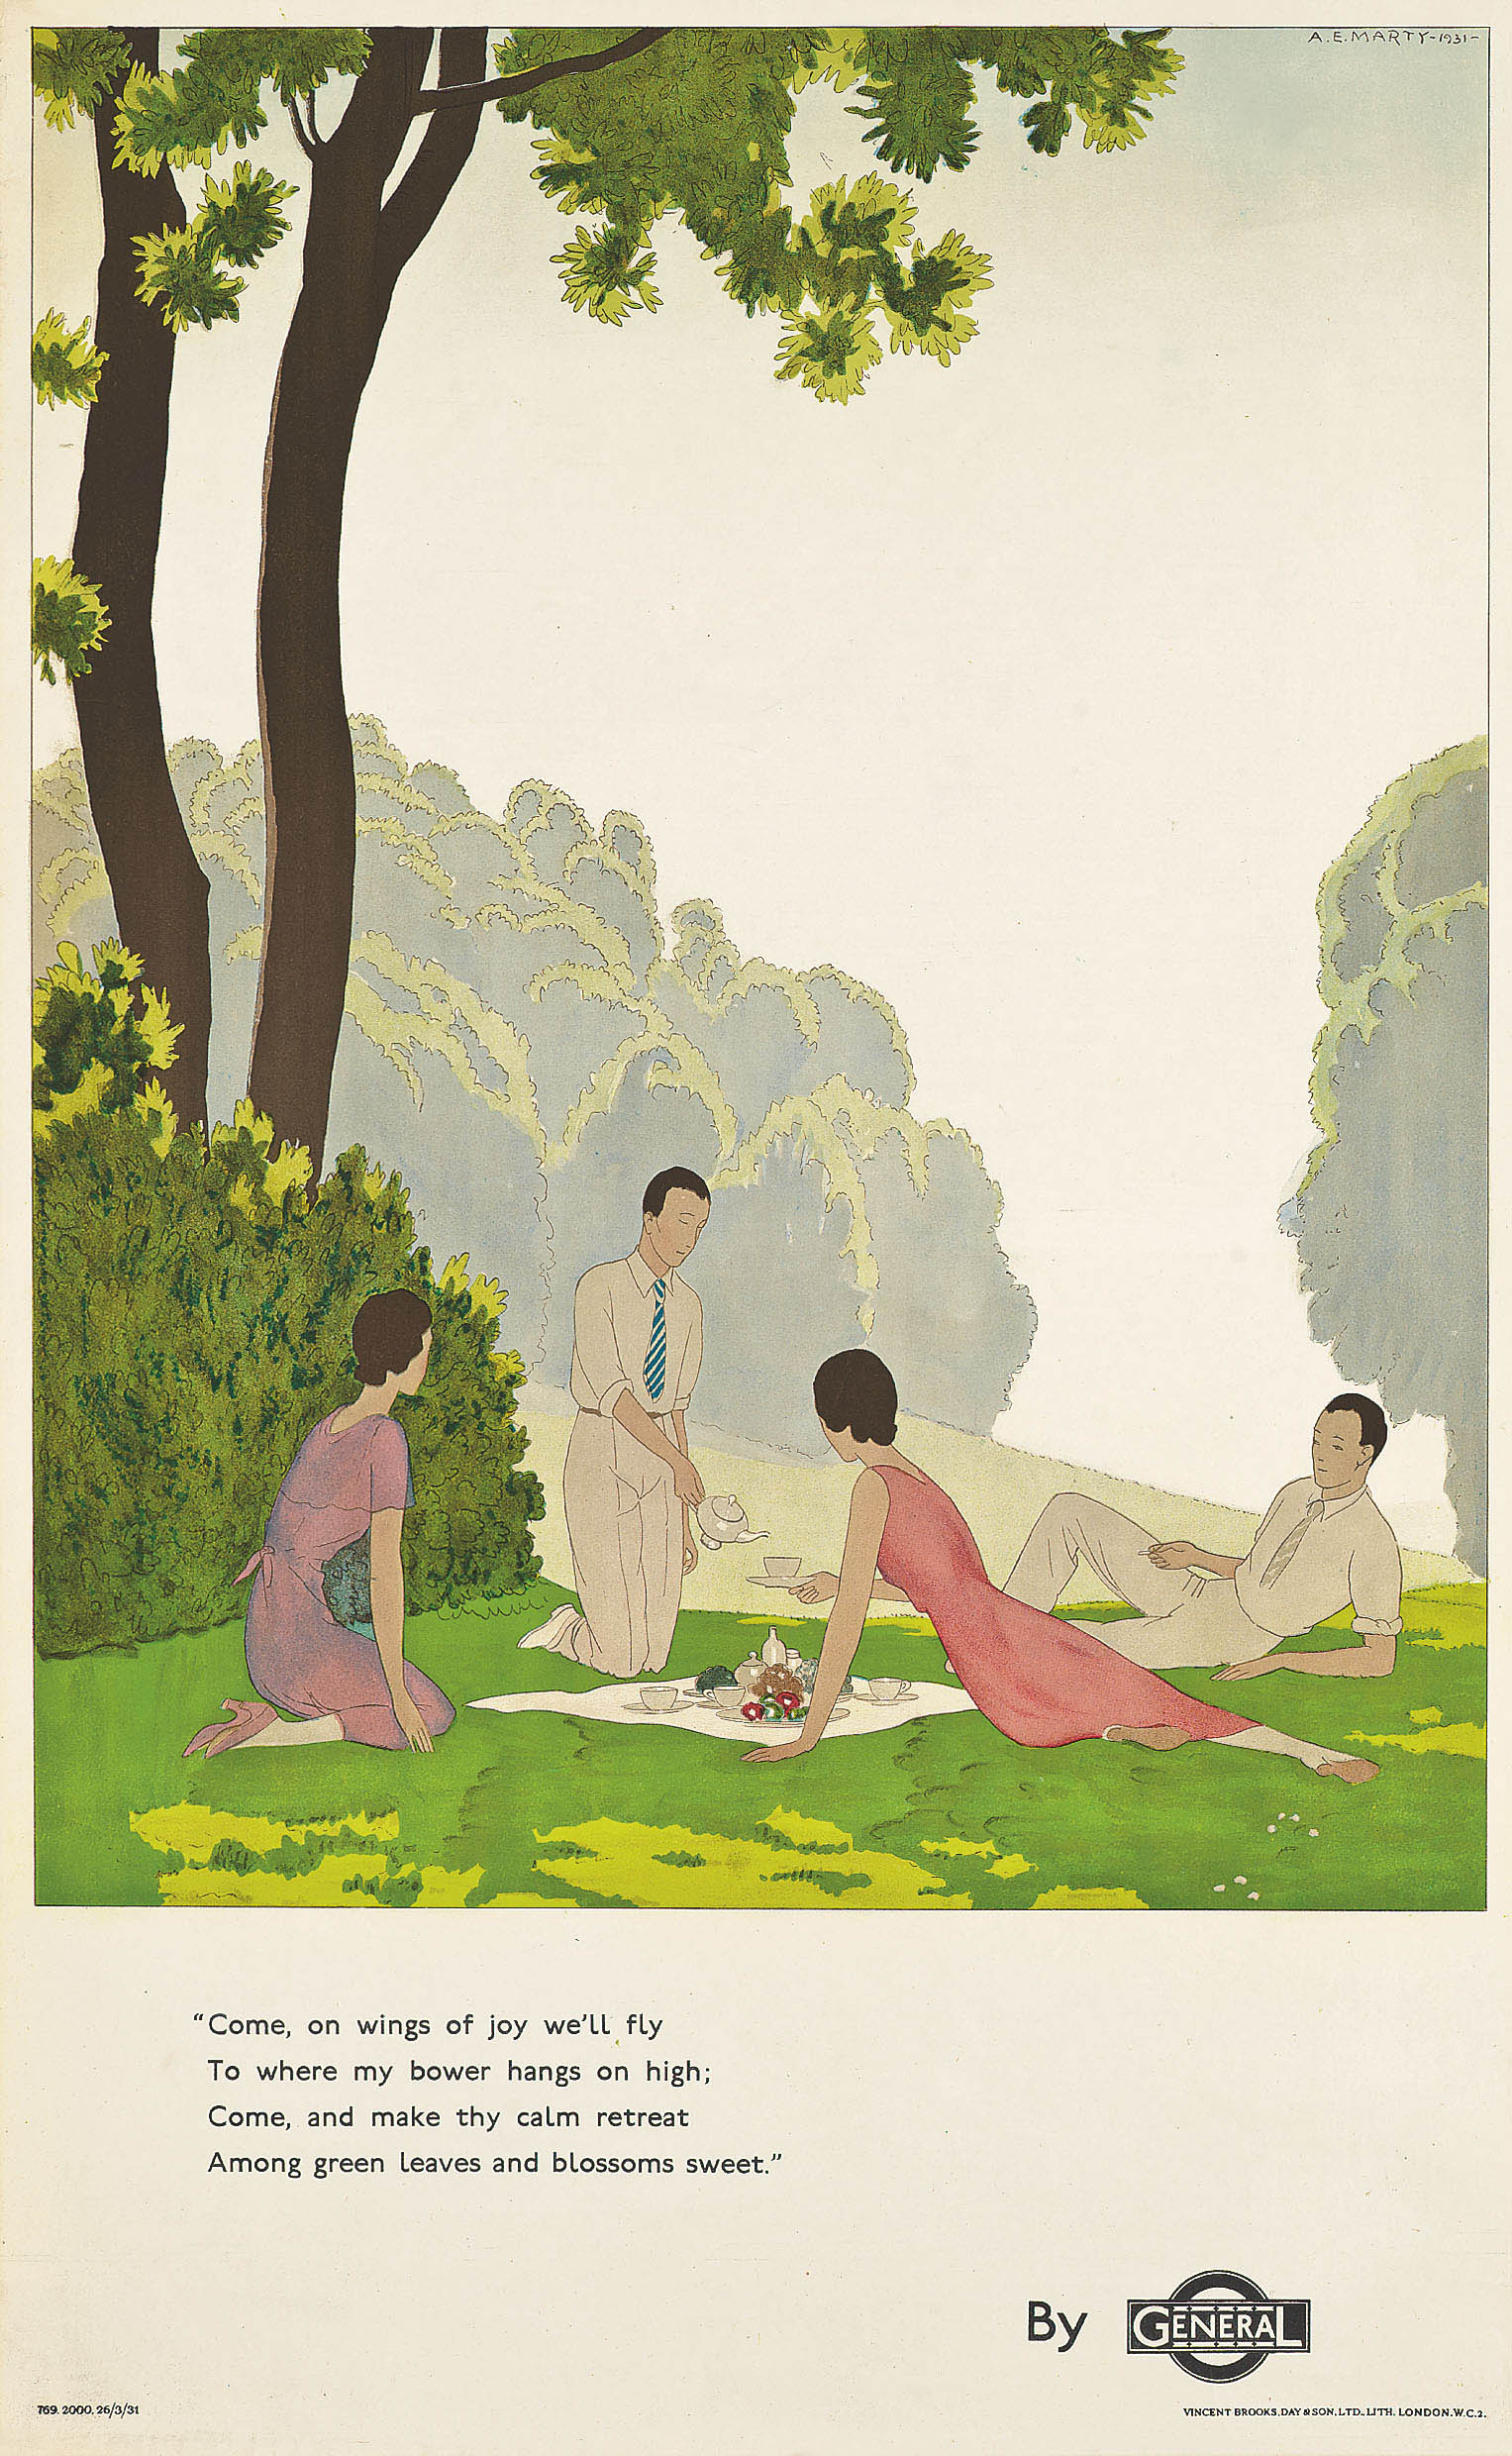 illustrational poster of friends having a picnic in the lush outdoors